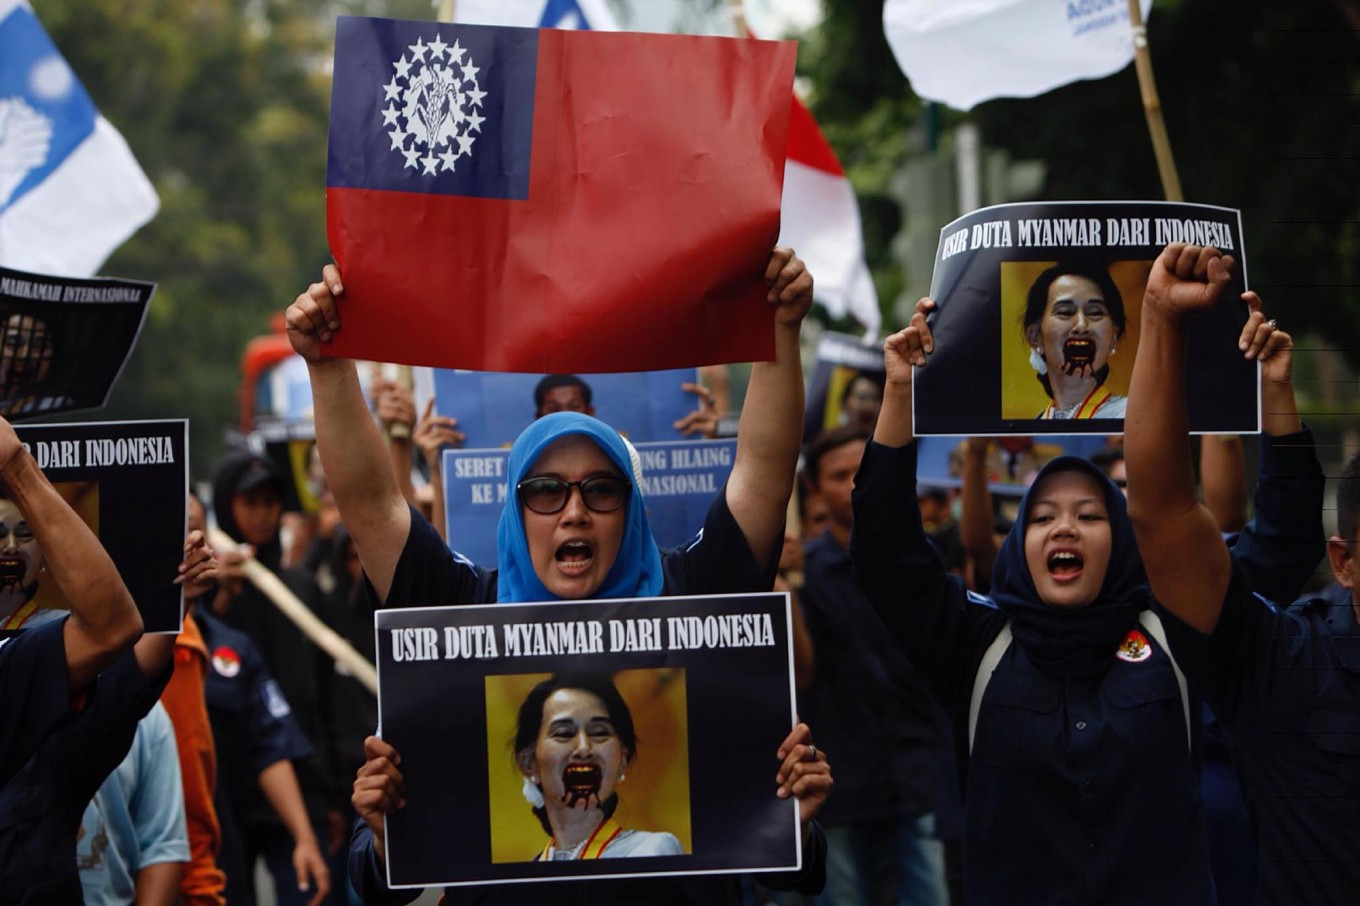 Indonesia urged to initiate conflict resolution for Rohingya